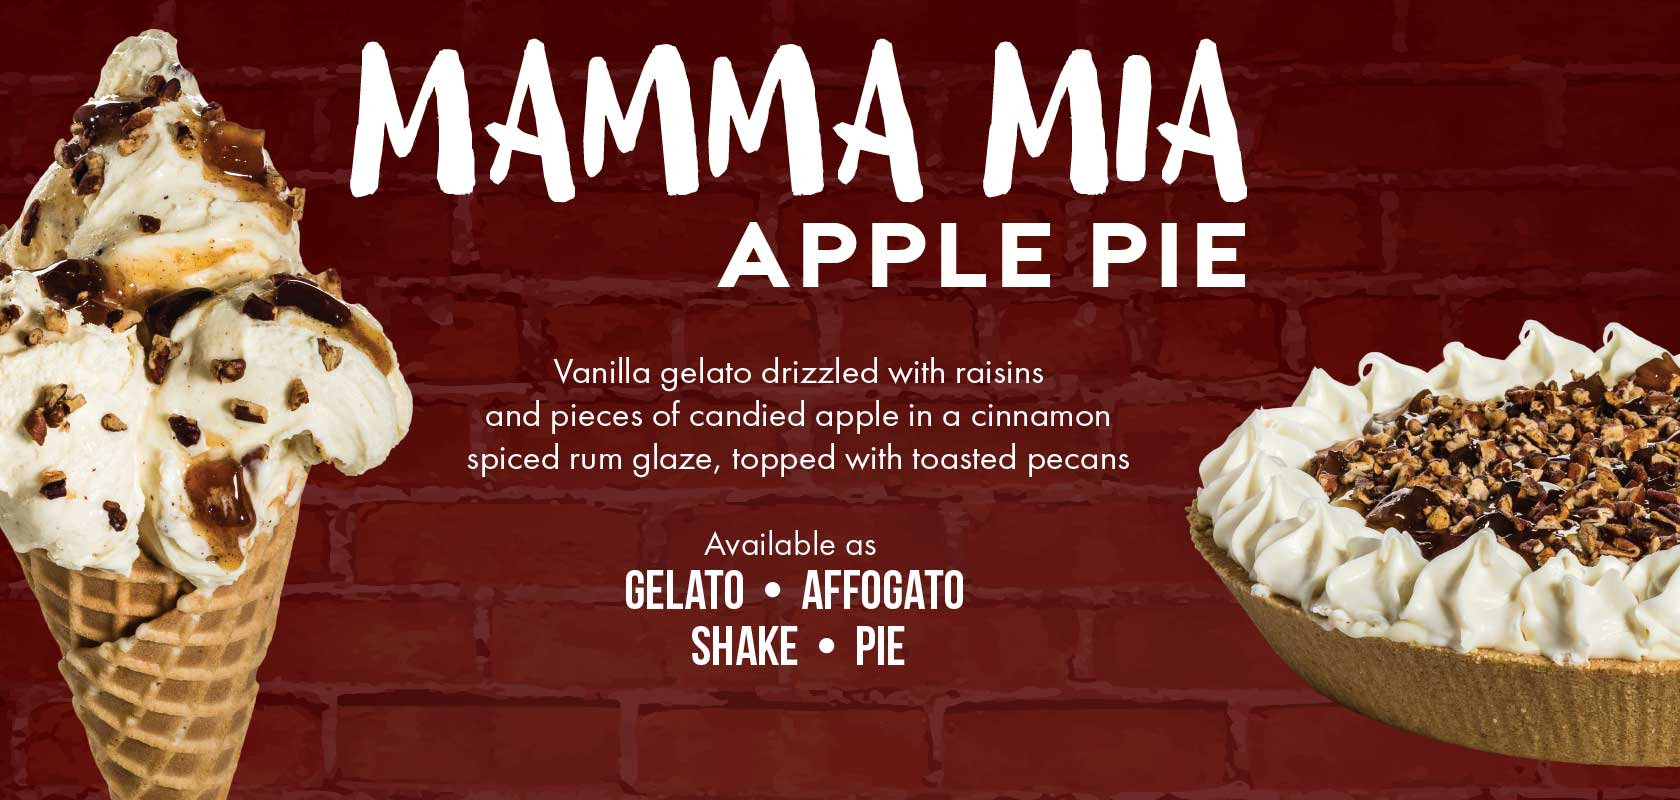 Mamma Mia Apple Pie Gelato! Vanilla gelato drizzled with raisins and pieces of candied apple in a cinnamon spiced rum glaze, topped with roasted pecans.